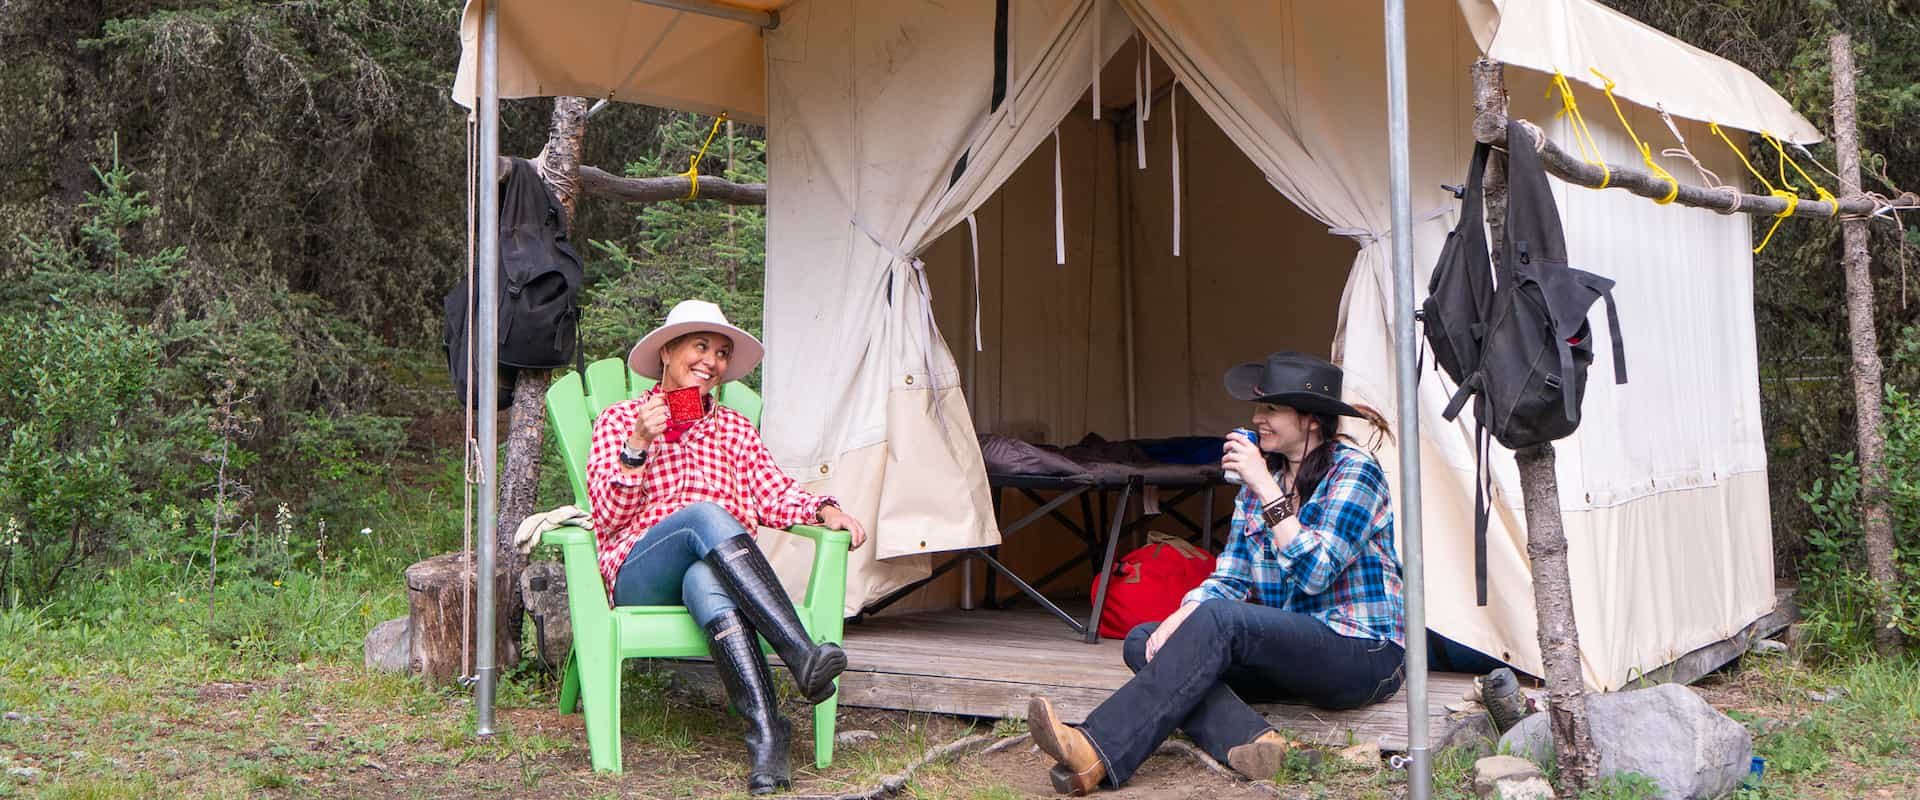 Relaxing at Stoney Tent on the Stoney Creek Backcountry Tent Trip with Banff Trail Riders in the Canadian Rockies